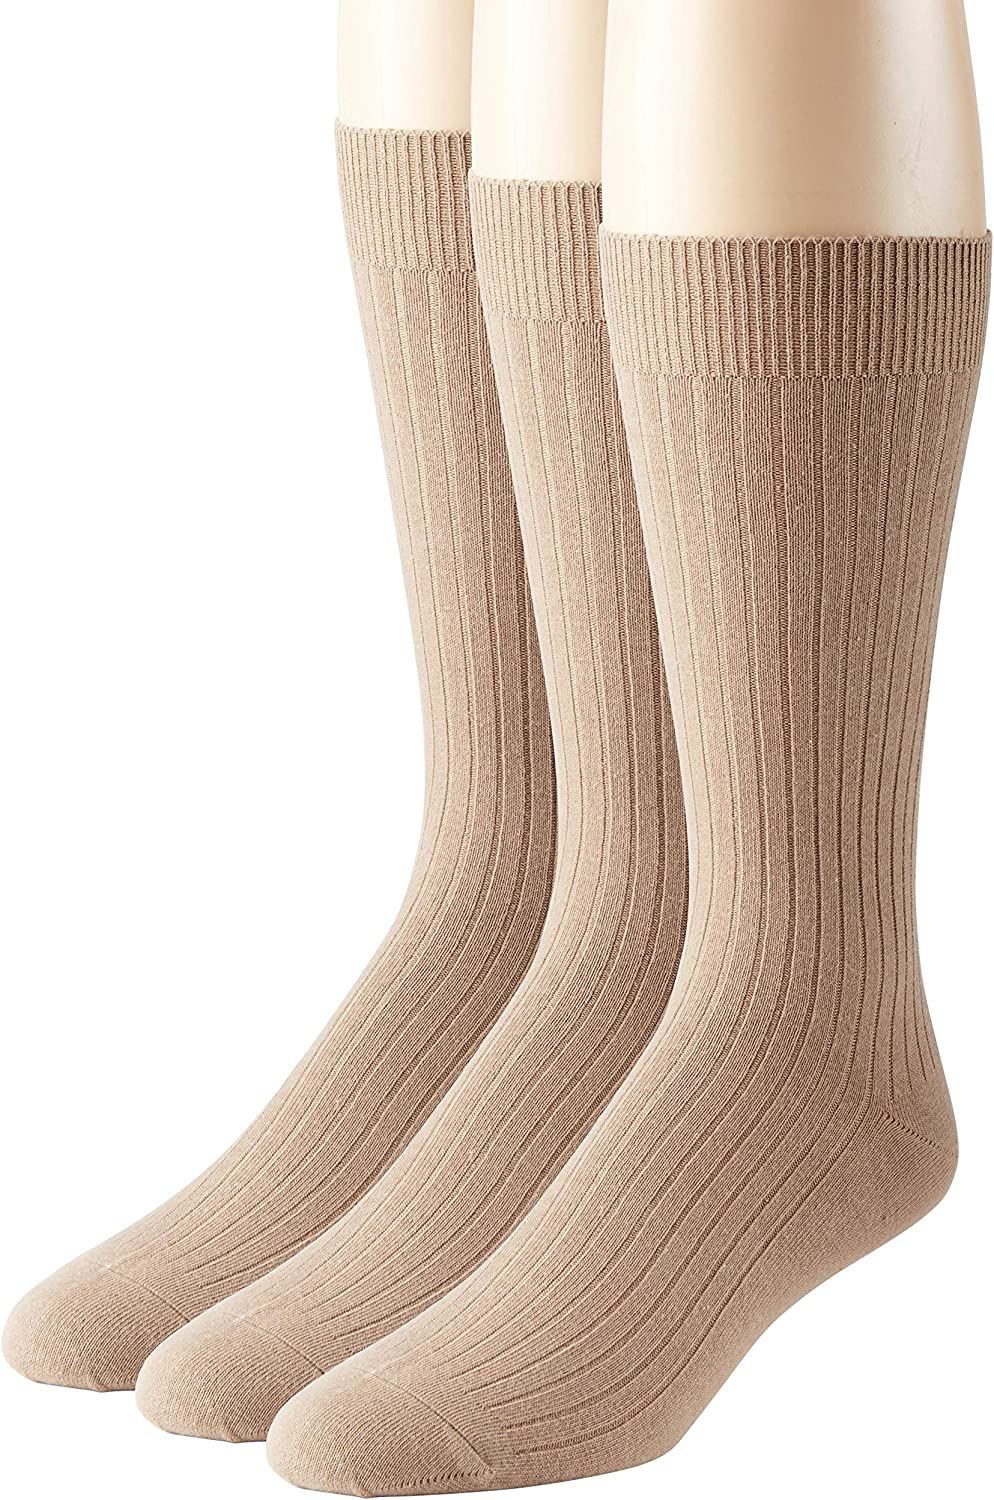 Men's Socks Soft Ribbed Knit Classic Cotton Mid-Calf Crew Dress Socks 3 & 6 Pack